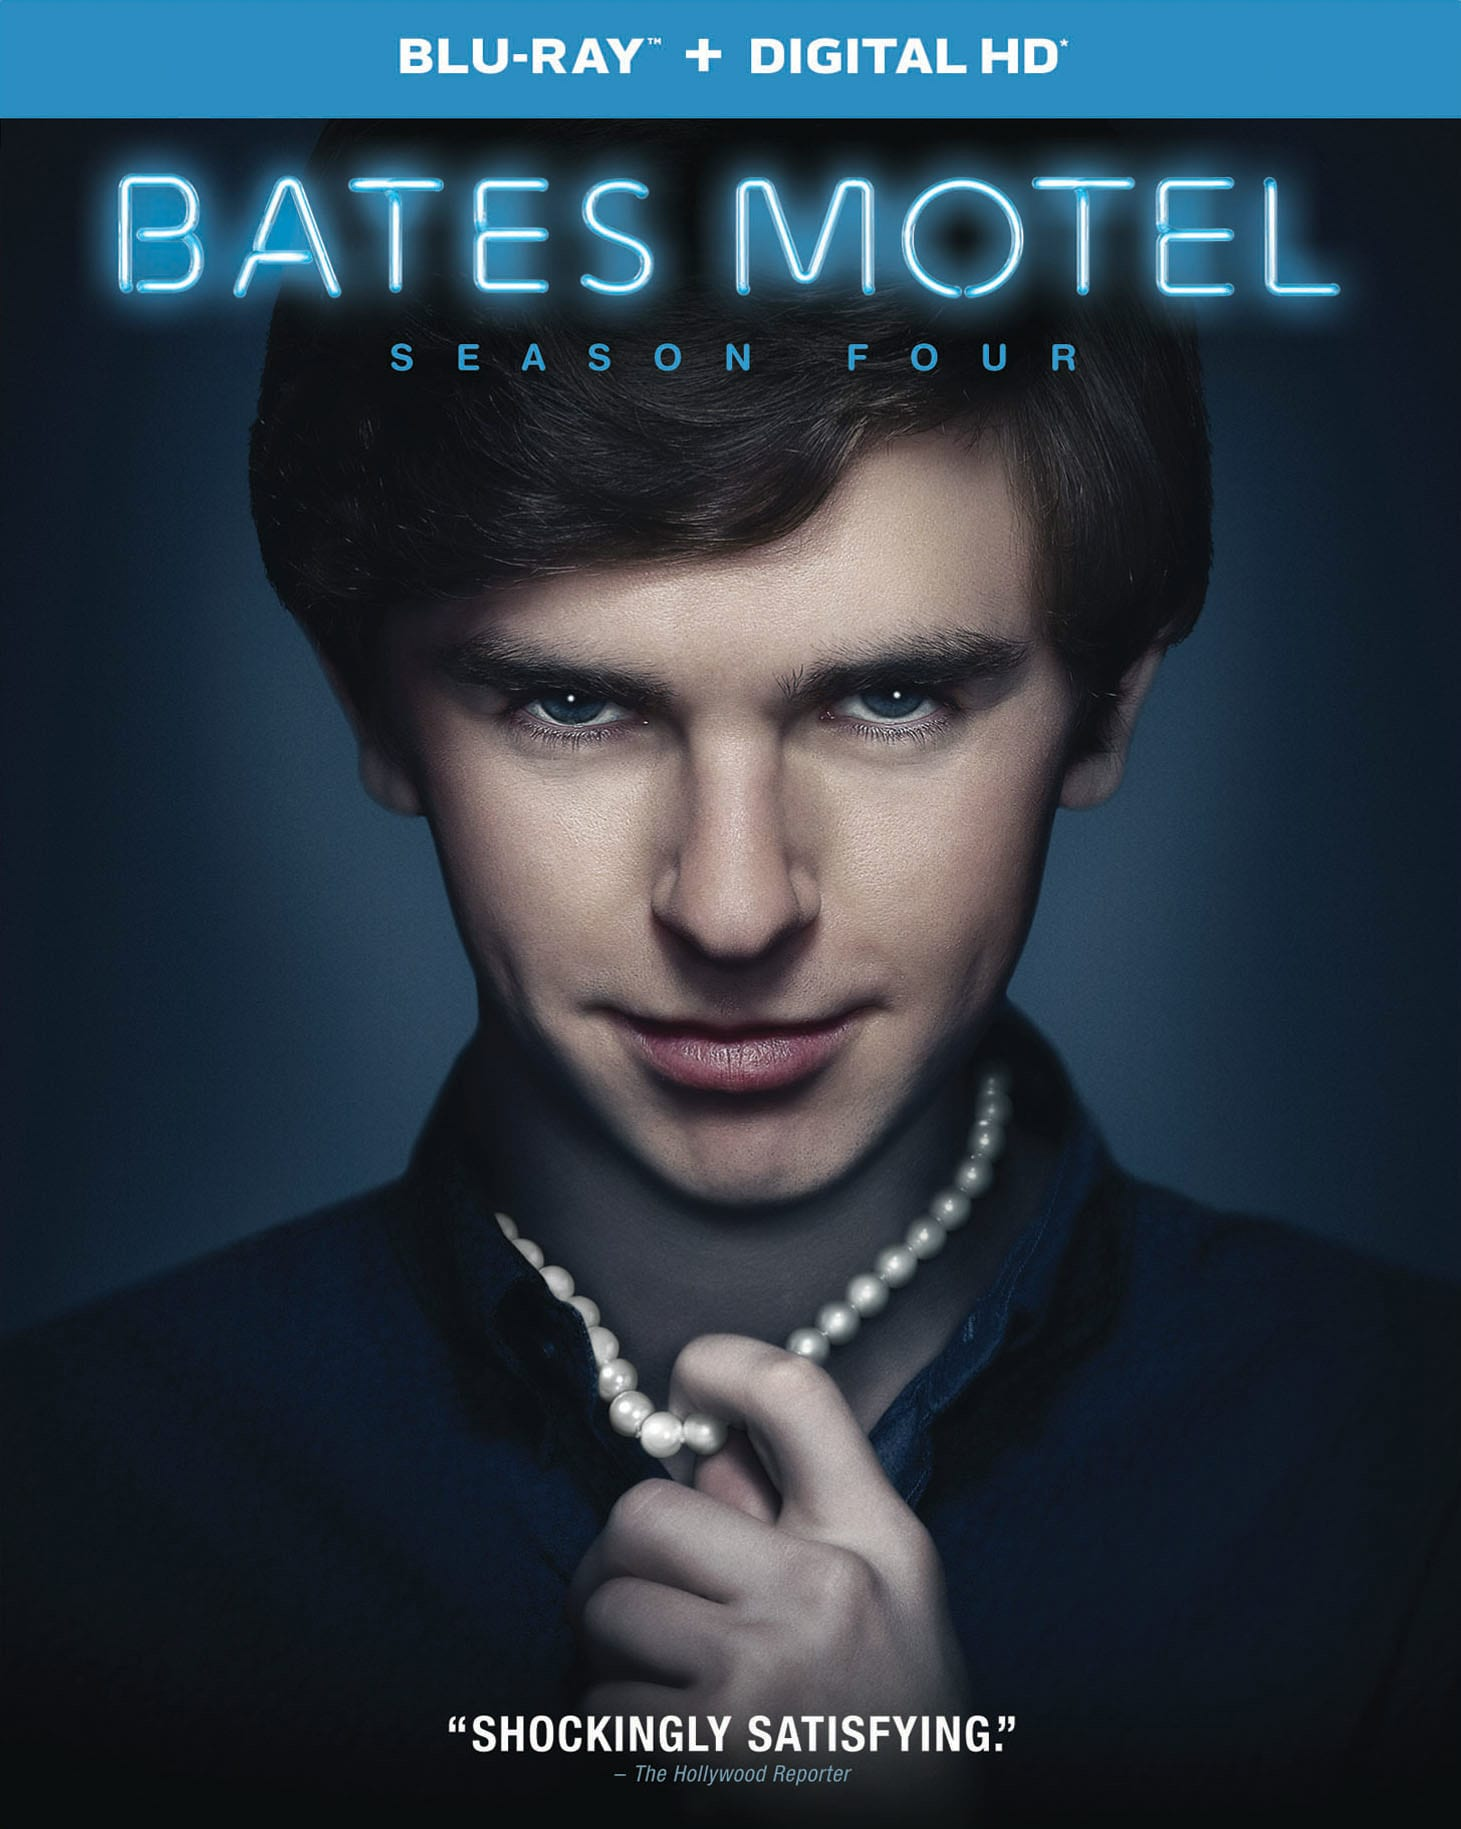 Bates Motel: Season Four (Digital) [Blu-ray]